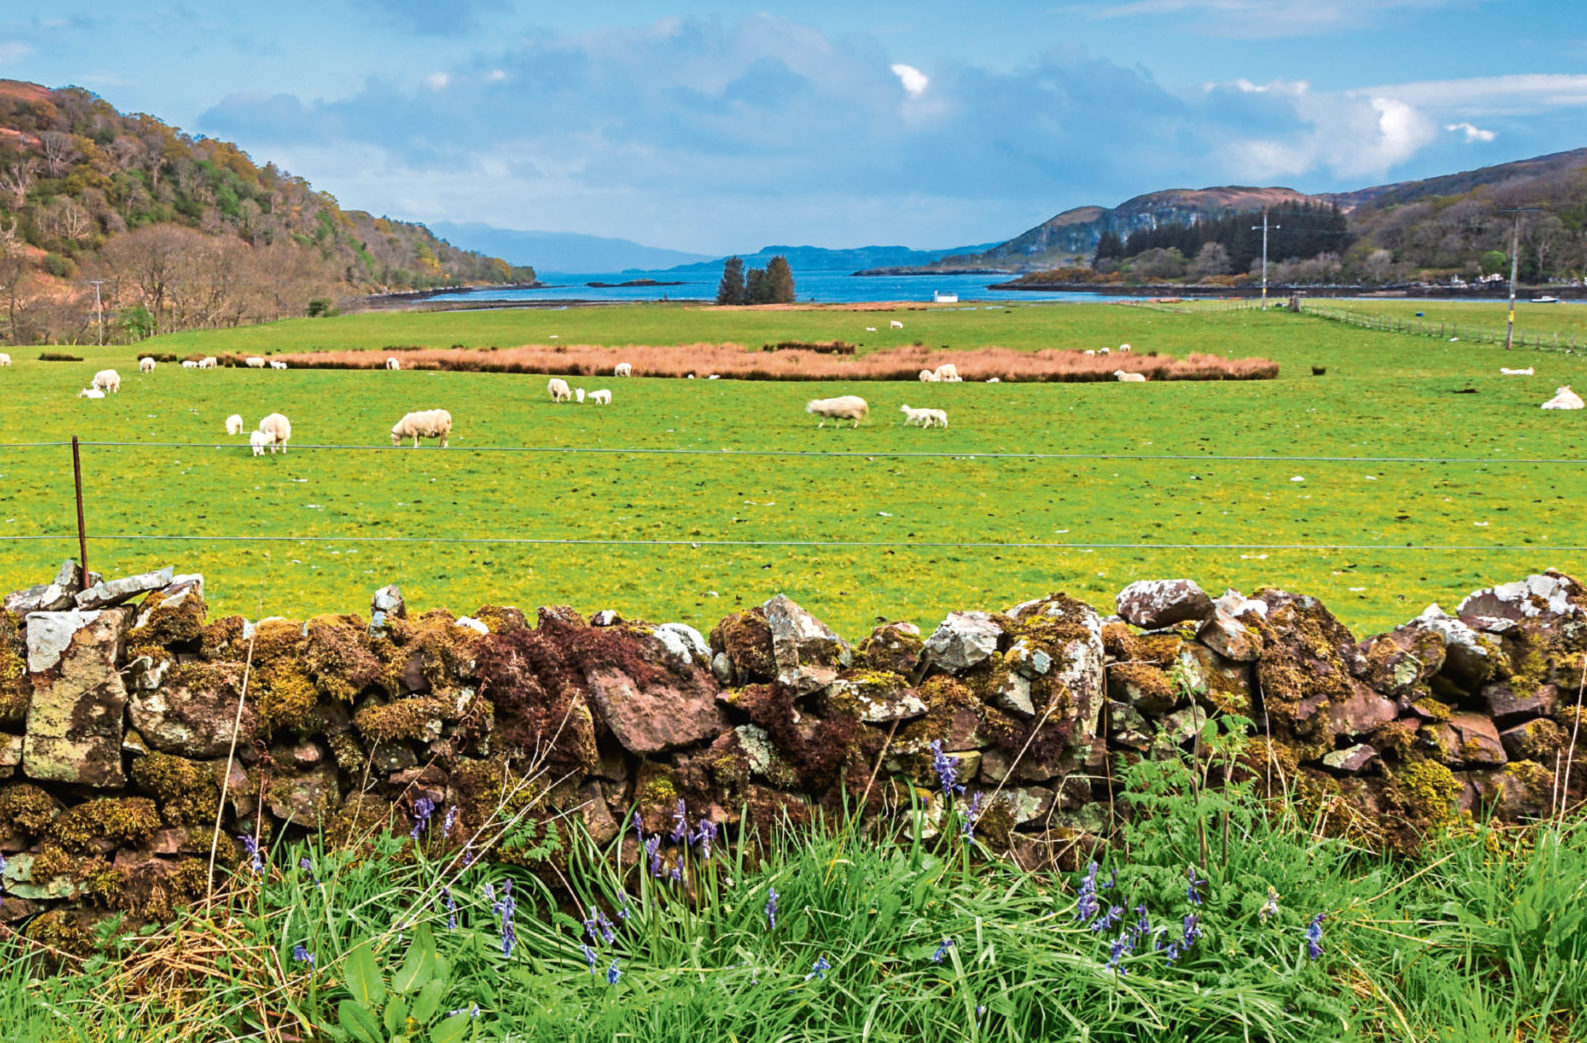 Stunning scenery has helped make agritourism successful in Scotland.